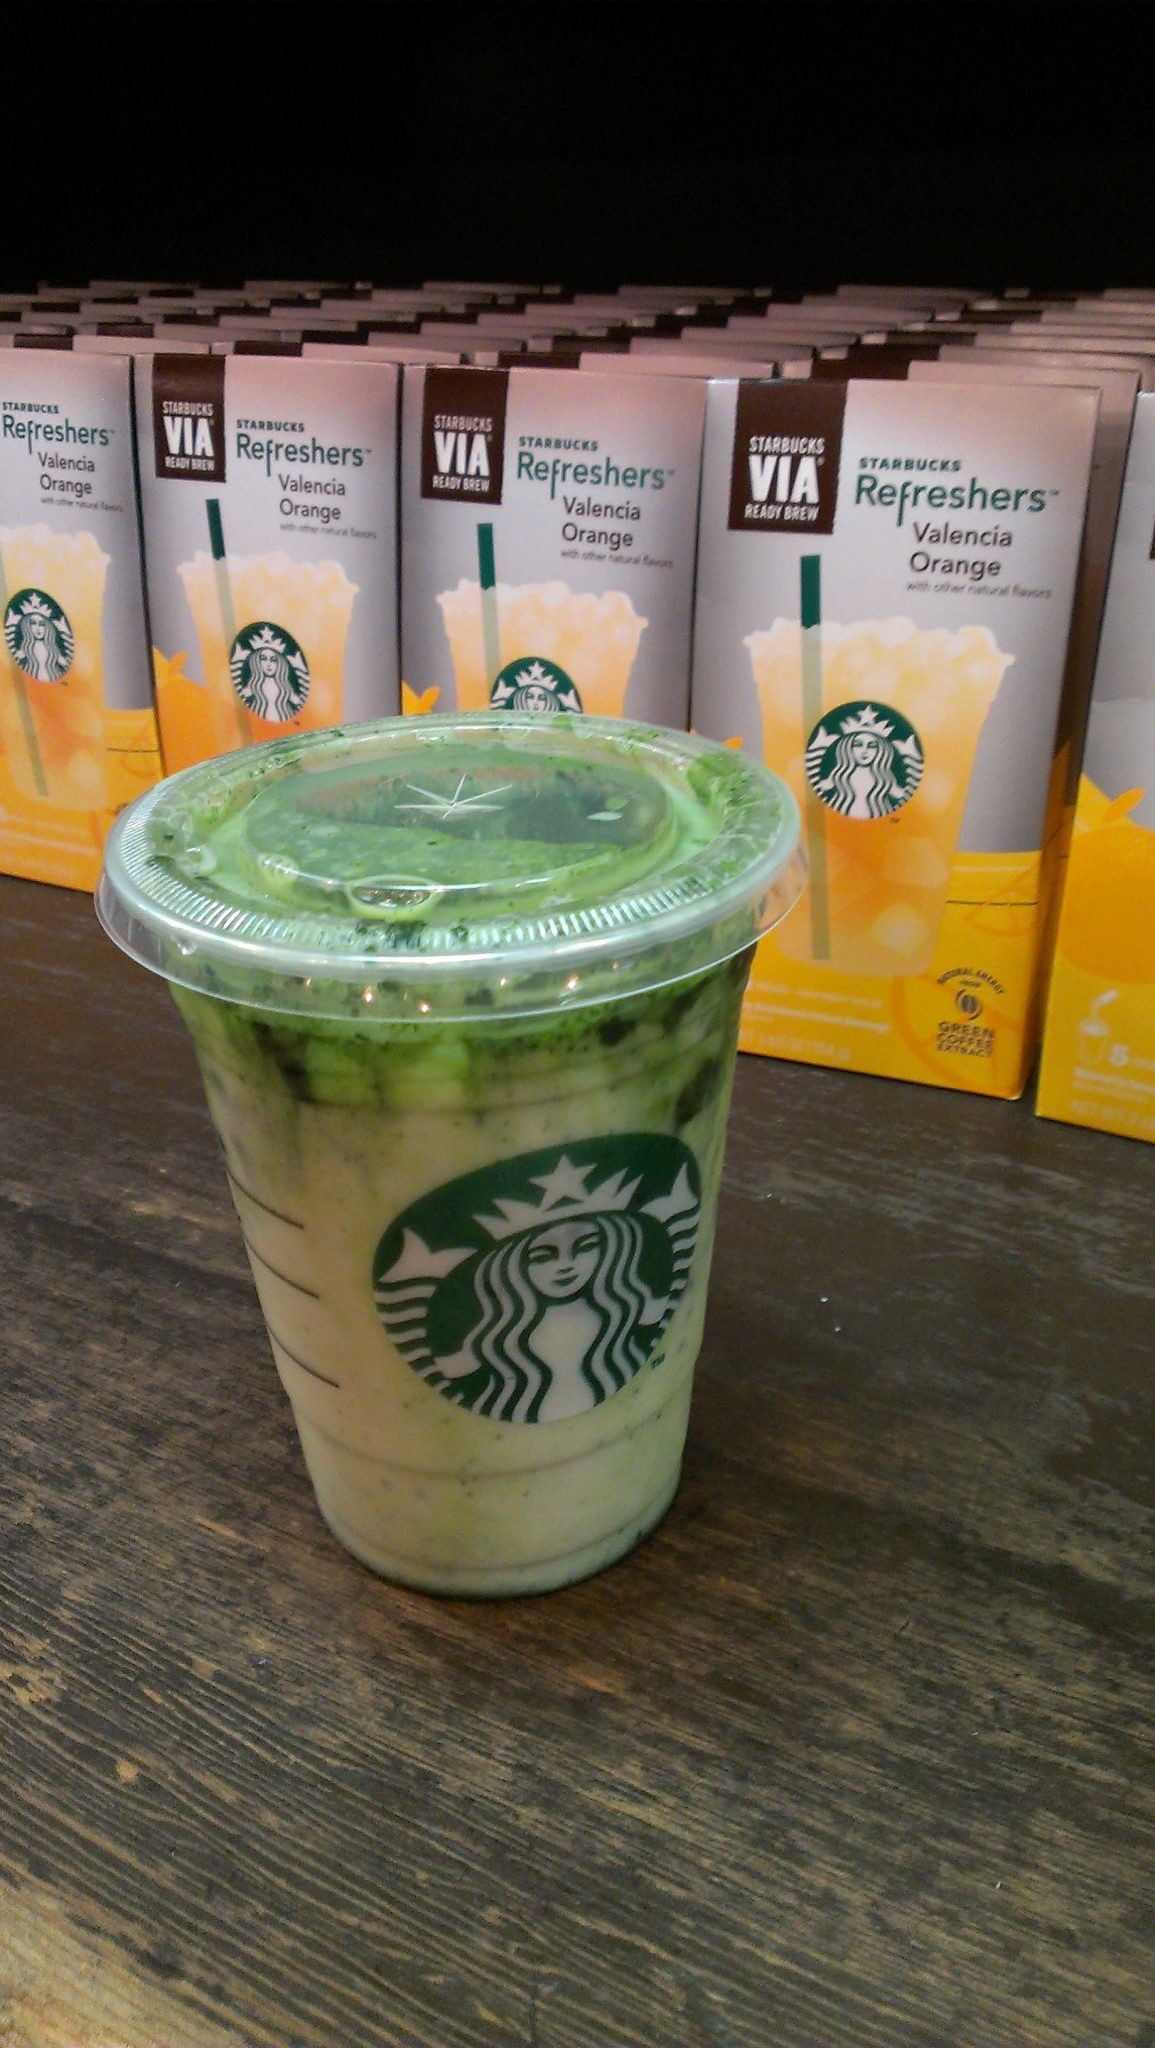 starbucks summary Access to case studies expires six months after purchase date publication date: june 02, 2014 starbucks coffee company: transformation and renewal analyzes the.